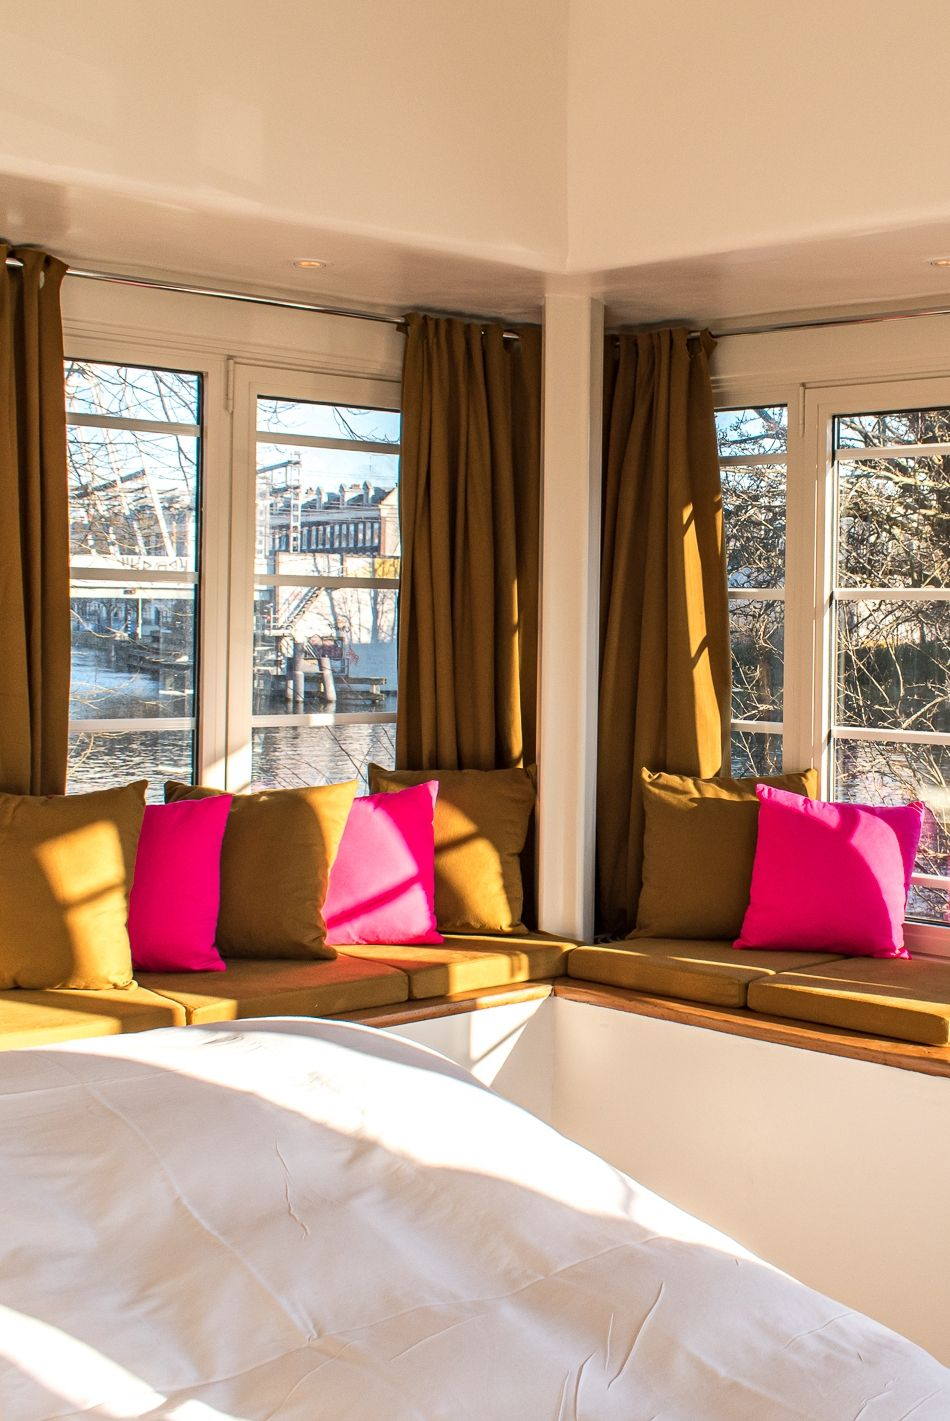 Get snug in the windowsills of newly opened bridge house 303-Willemsbrug! Watch the boats go by, drink a coffee and browse through our Neighbourhood Guide. Just don't forget to actually go out and explore Amsterdam!  #sweetshotel #willemsbrug #amsterdam #hotel #hotels #amsterdamwest #oudwest #haarlemmerpoort #westerpark #windowsills #windowsill #snug #cosy #interior #hotelroom #guide #cityguide #unique #unusual #places #stays #hoteliers #bridgehouse #bridge #tiny #house #dispersed #deconstructed